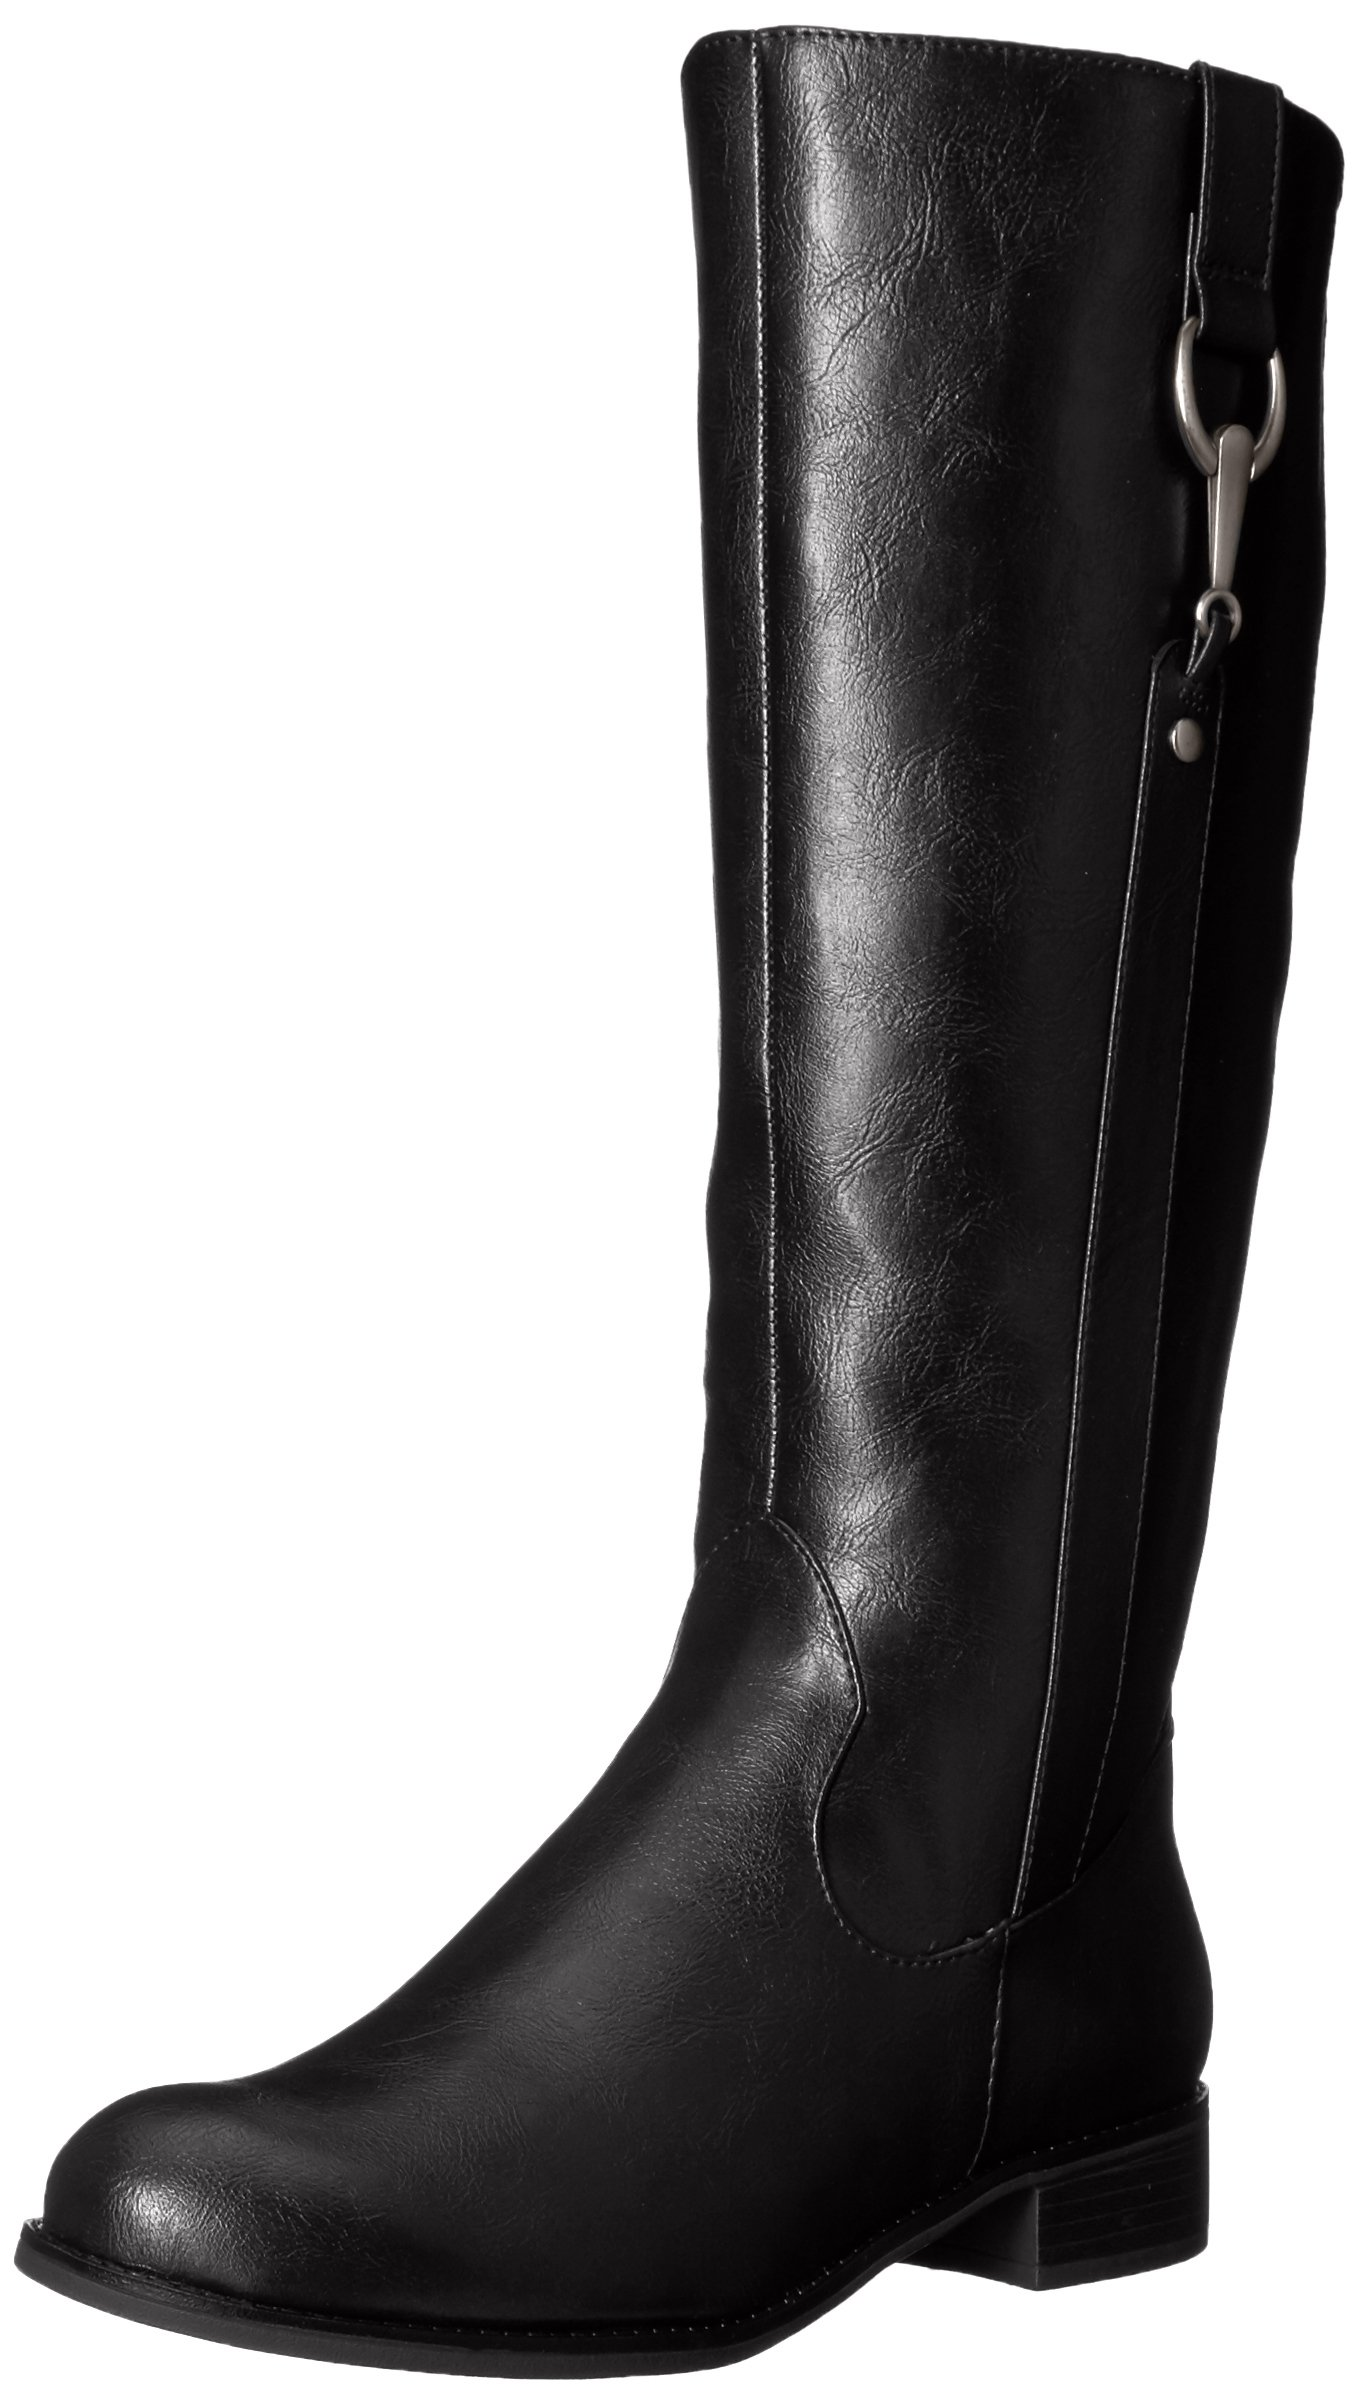 LifeStride Women's Sikora Riding Boot, Black, 7.5 W US